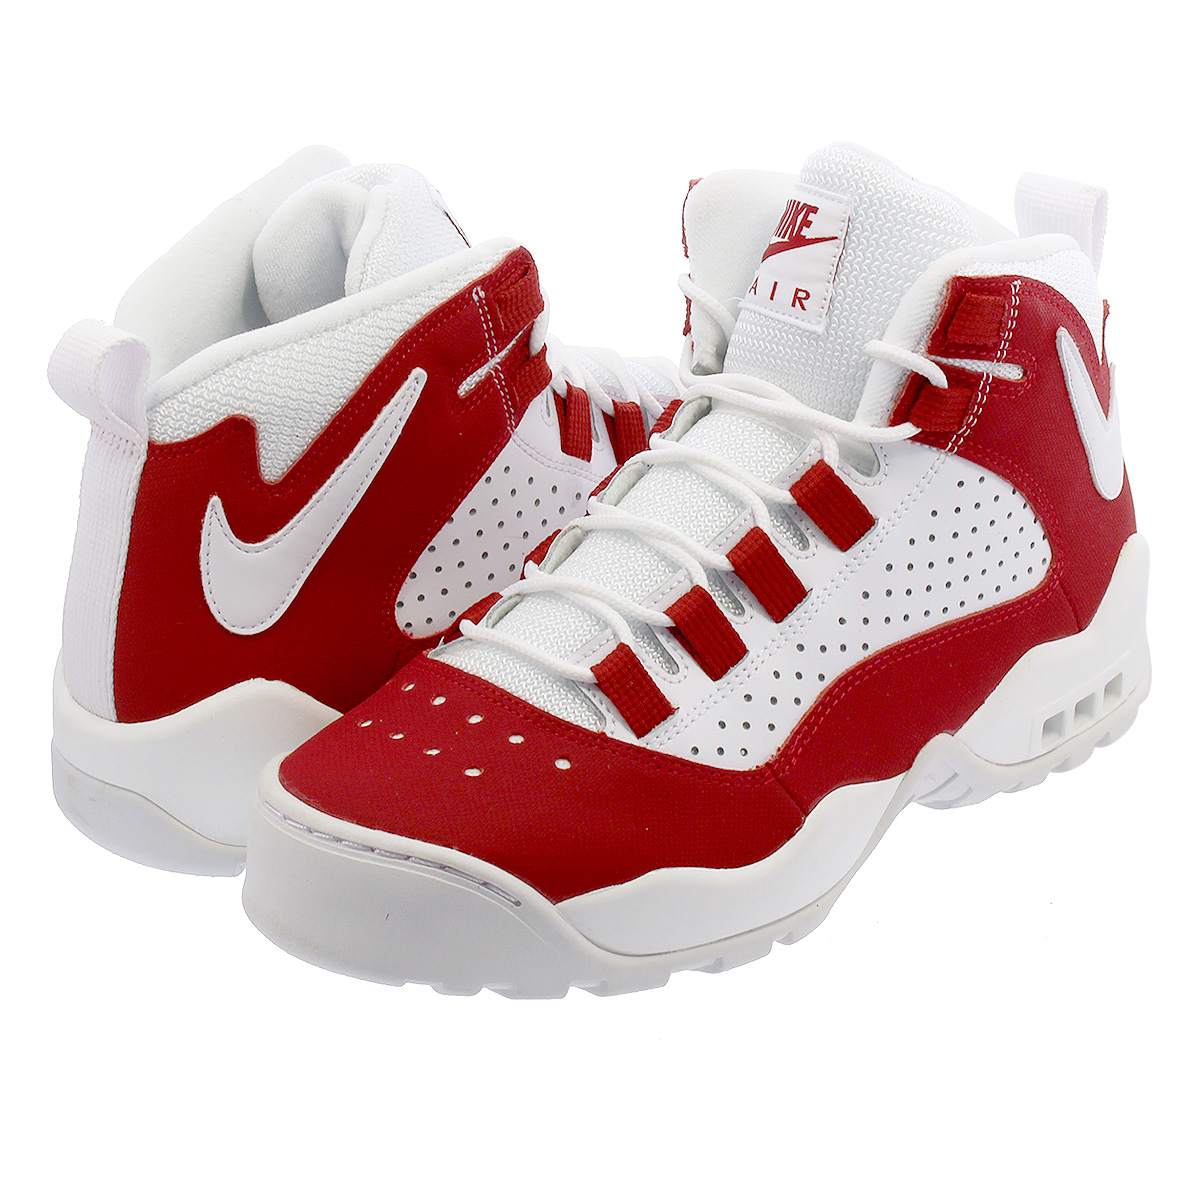 hot sale online b5038 6ef1d NIKE AIR DARWIN Kie Ney adder Win VARSITY RED WHITE aj9710-600 ...